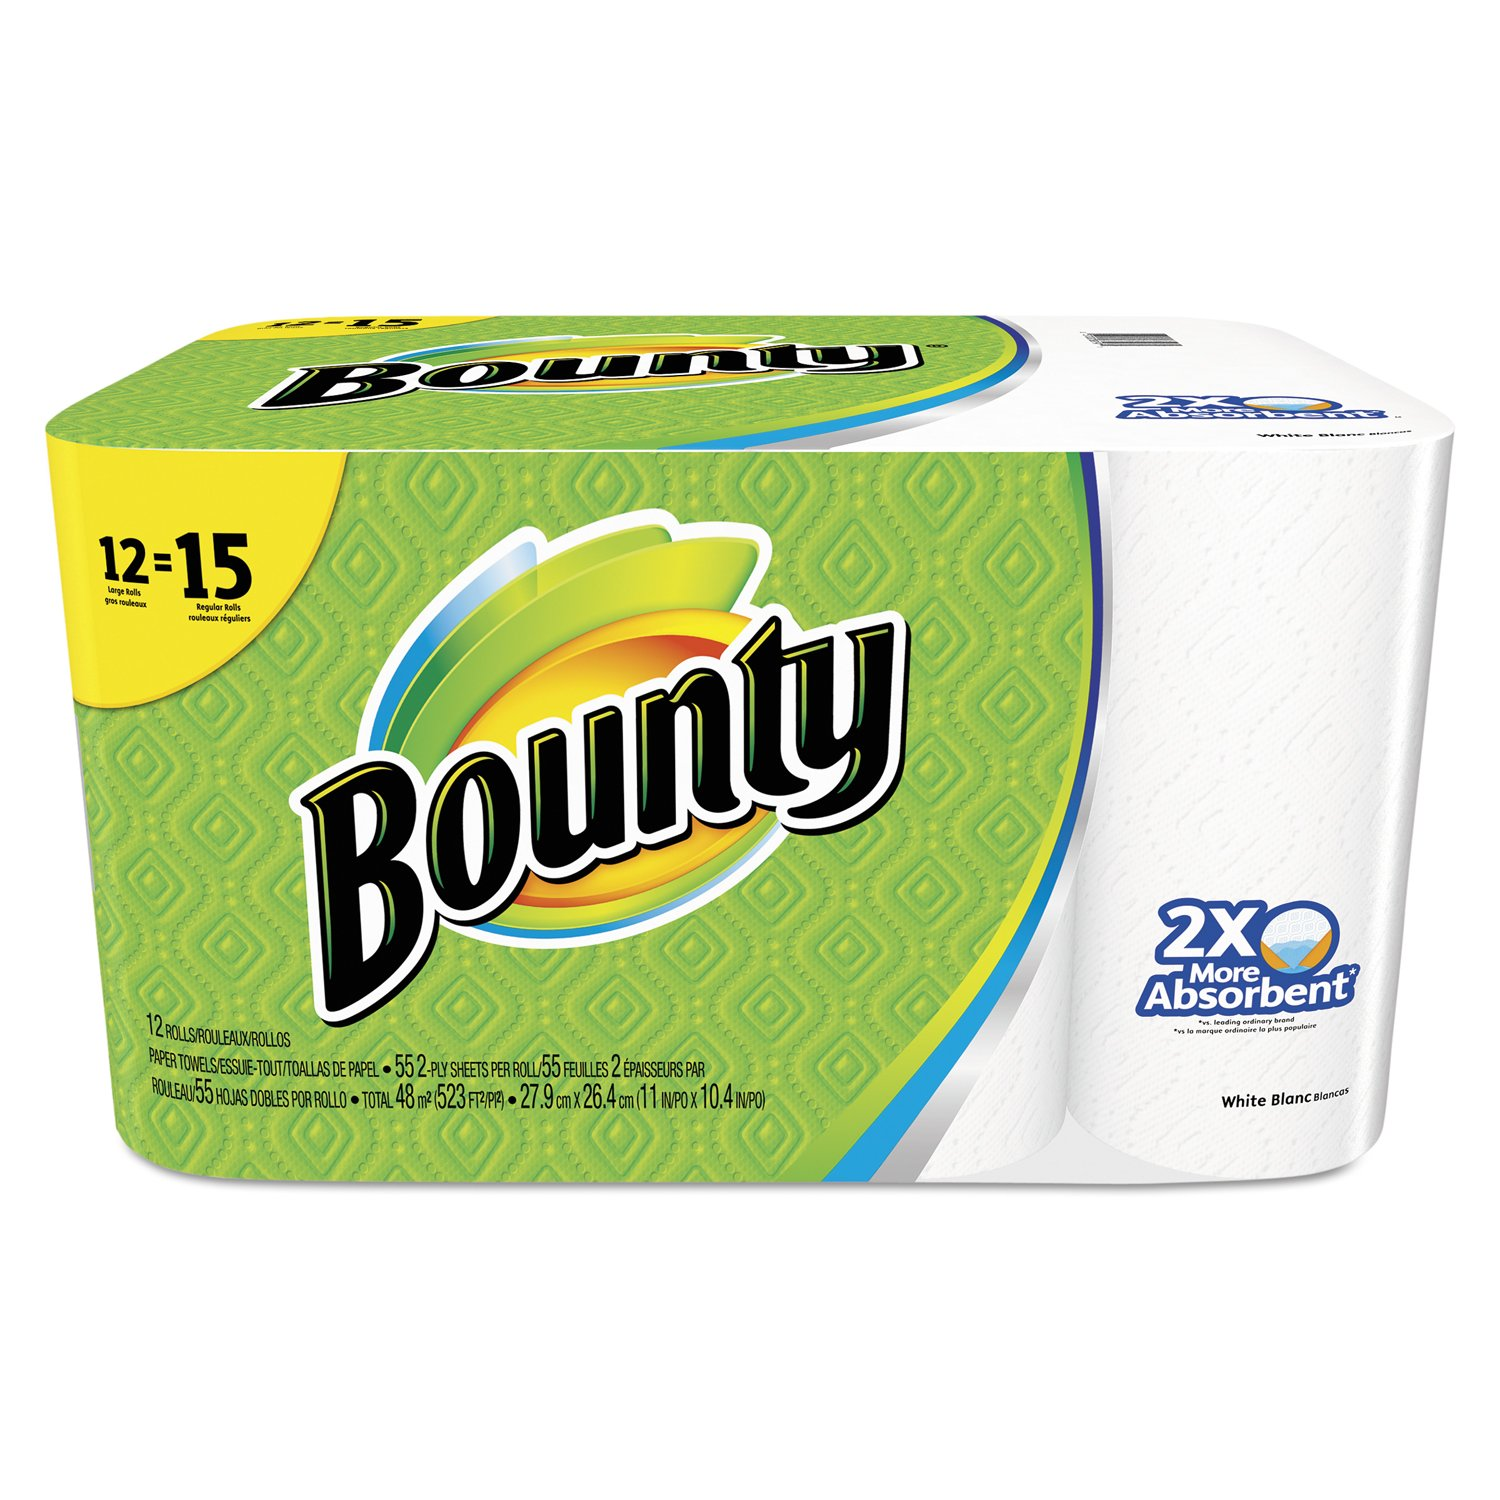 "Bounty 88197 Perforated Towel Rolls, 11"" x 10-2/5"", White (Pack of 12)"